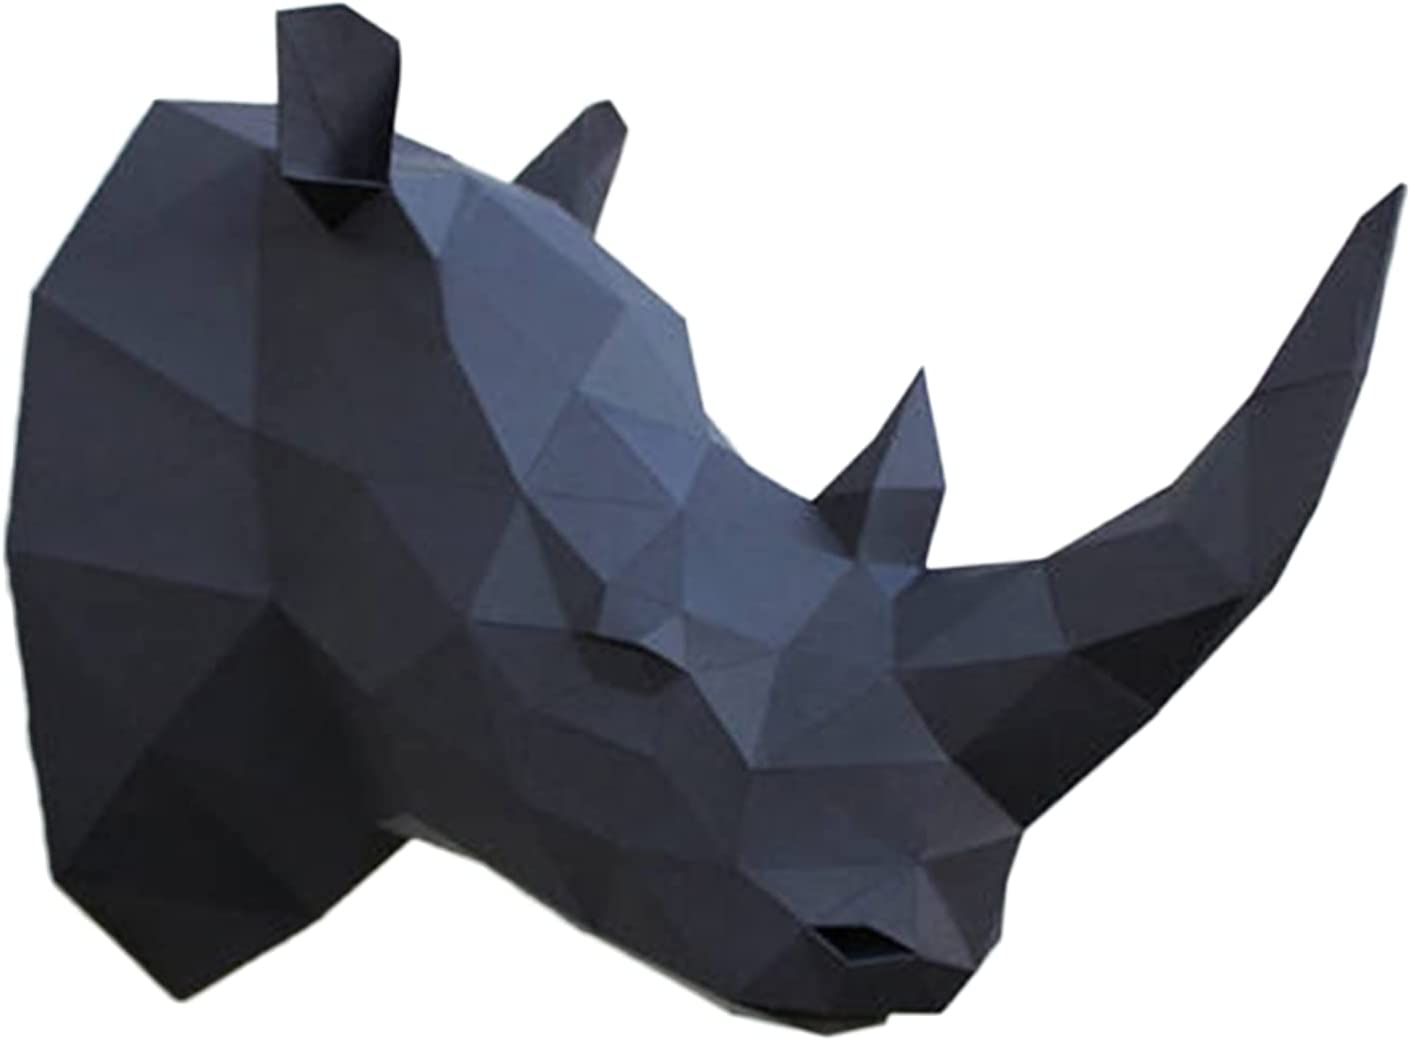 WLL-DP Rhino Head New mail order 3D Paper Puzzle Origami Trophy Cre Model Ranking TOP20